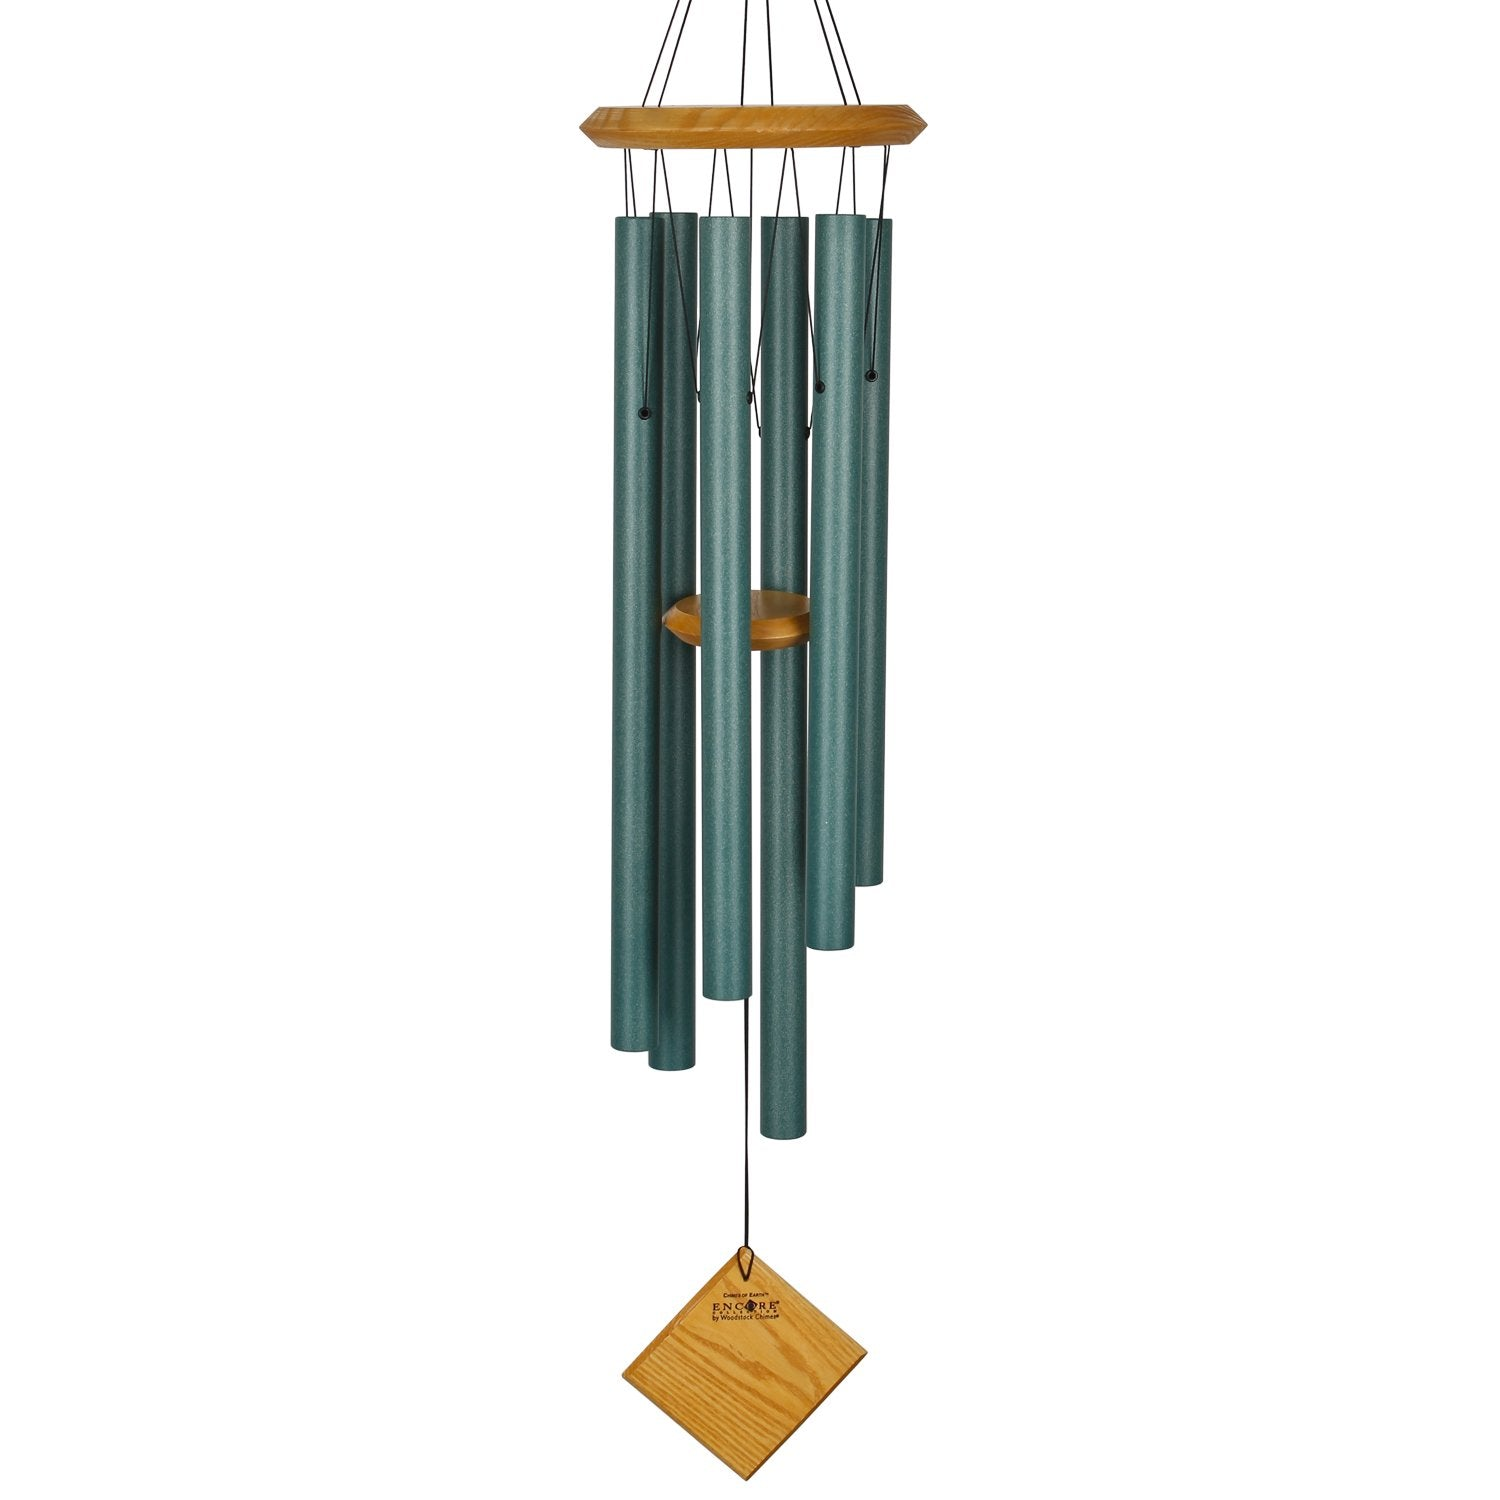 Encore Chimes of Earth - Verdigris main image